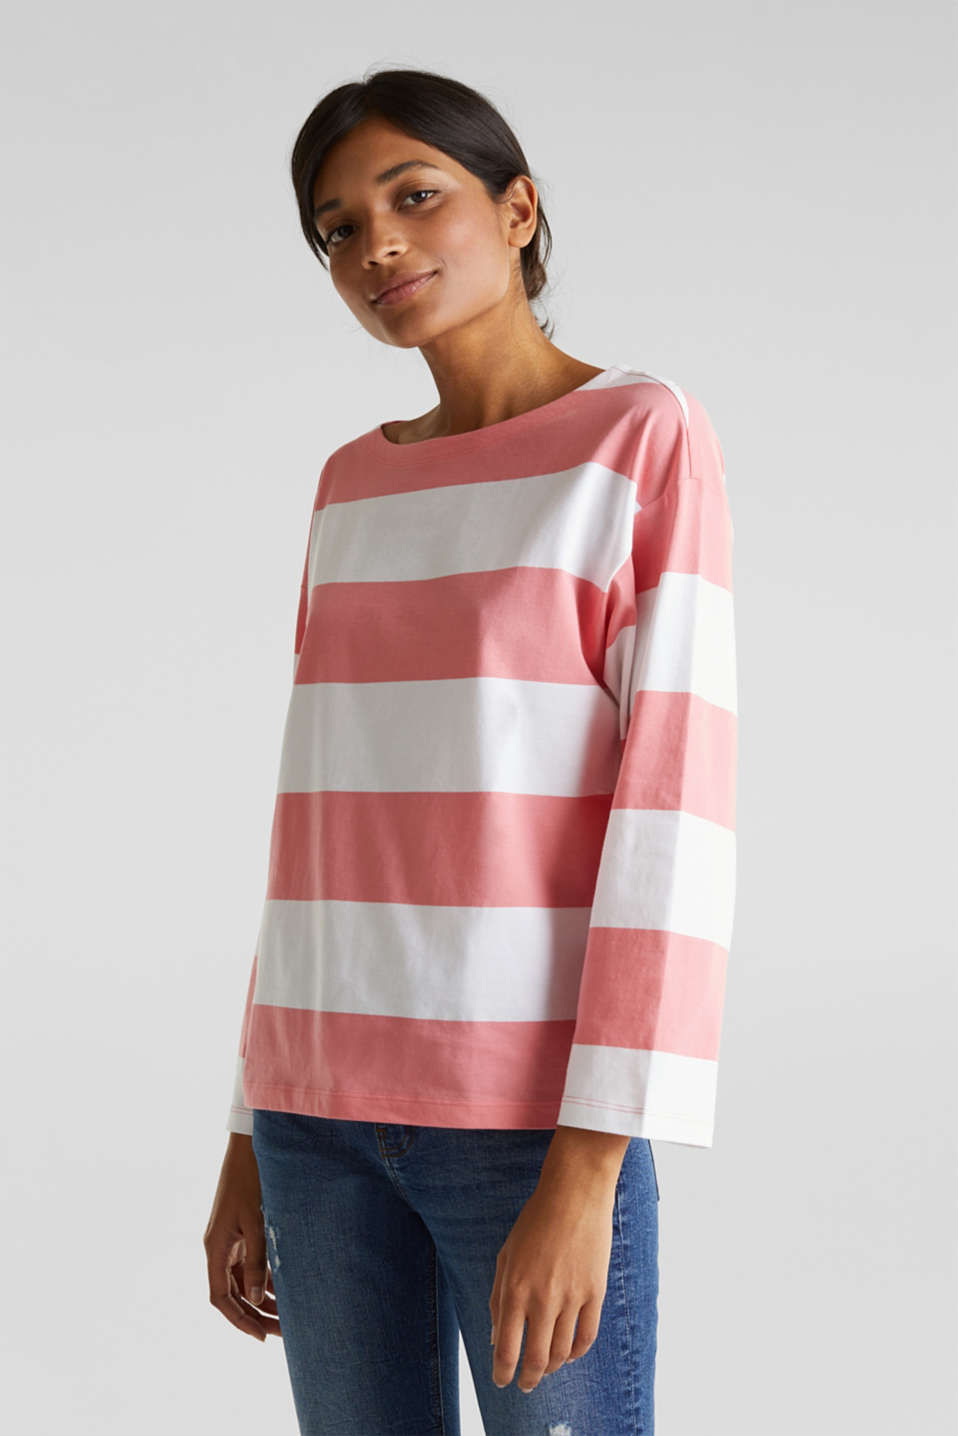 edc - Long sleeve top with wide sleeves, 100% cotton